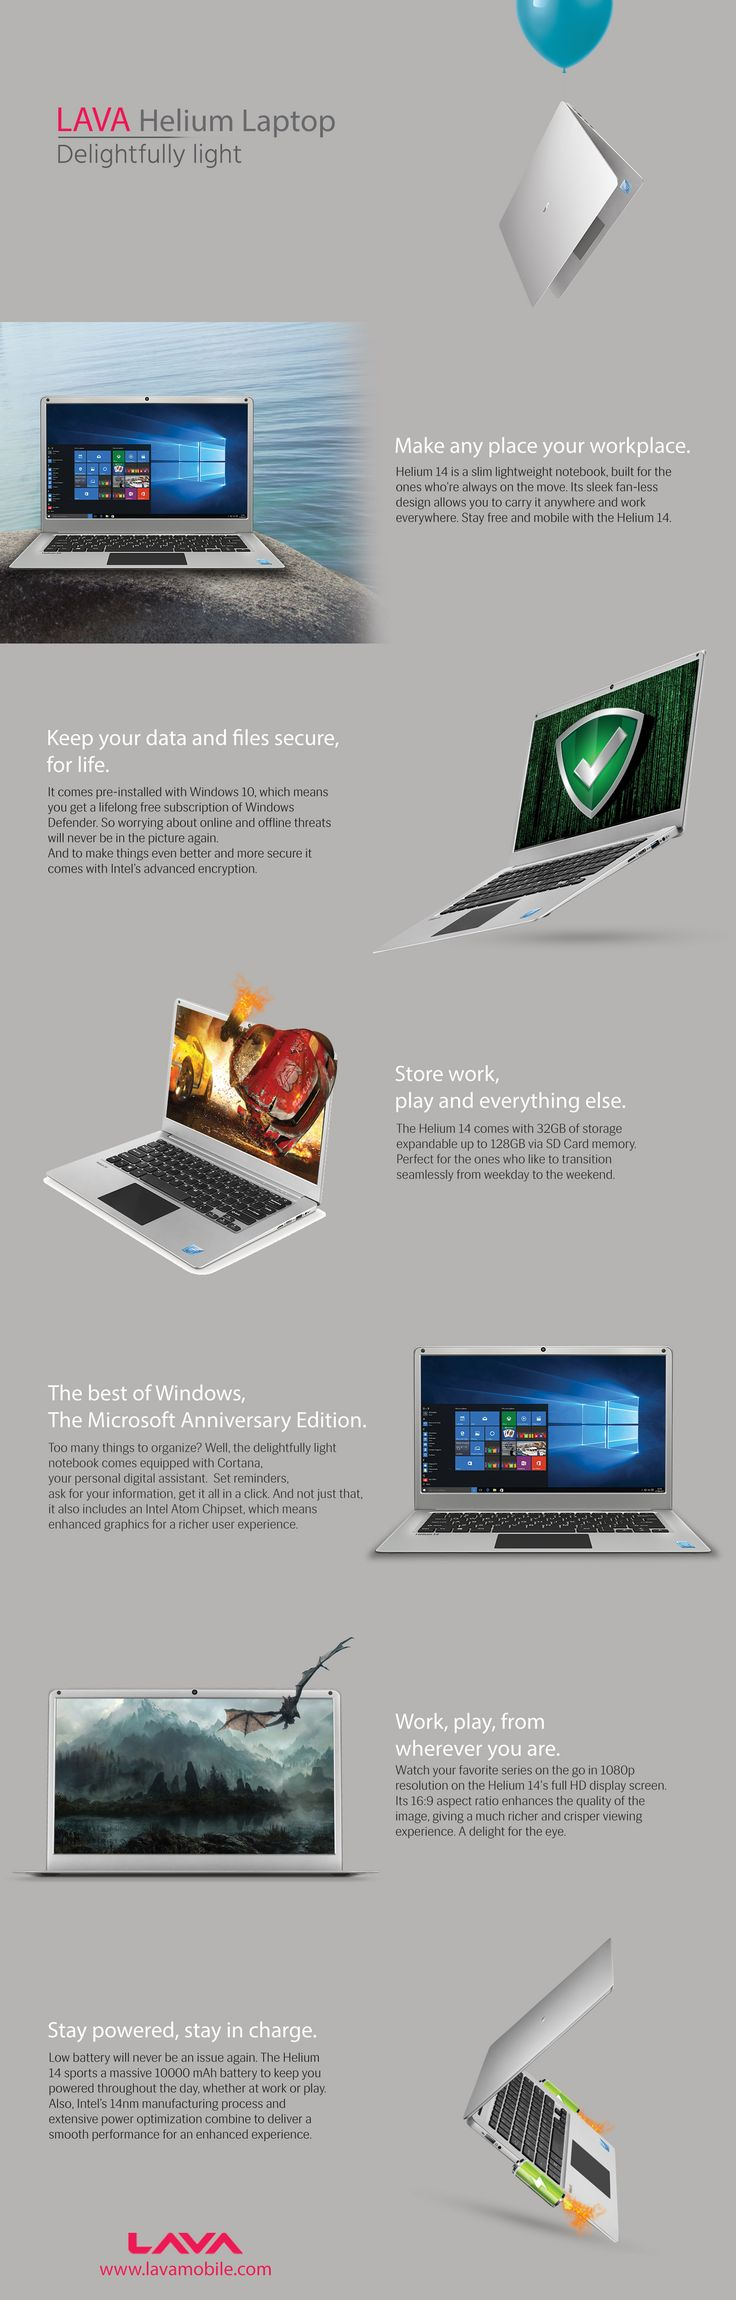 Best Lightweight LAVA Helium Laptop – Infographic Lava brings their latest notebook with window 10 and delightfully light. Helium 14 is a slim light weight notebook, built for the ones who're always on the move. So with best lightweight laptop make any place your workplace.